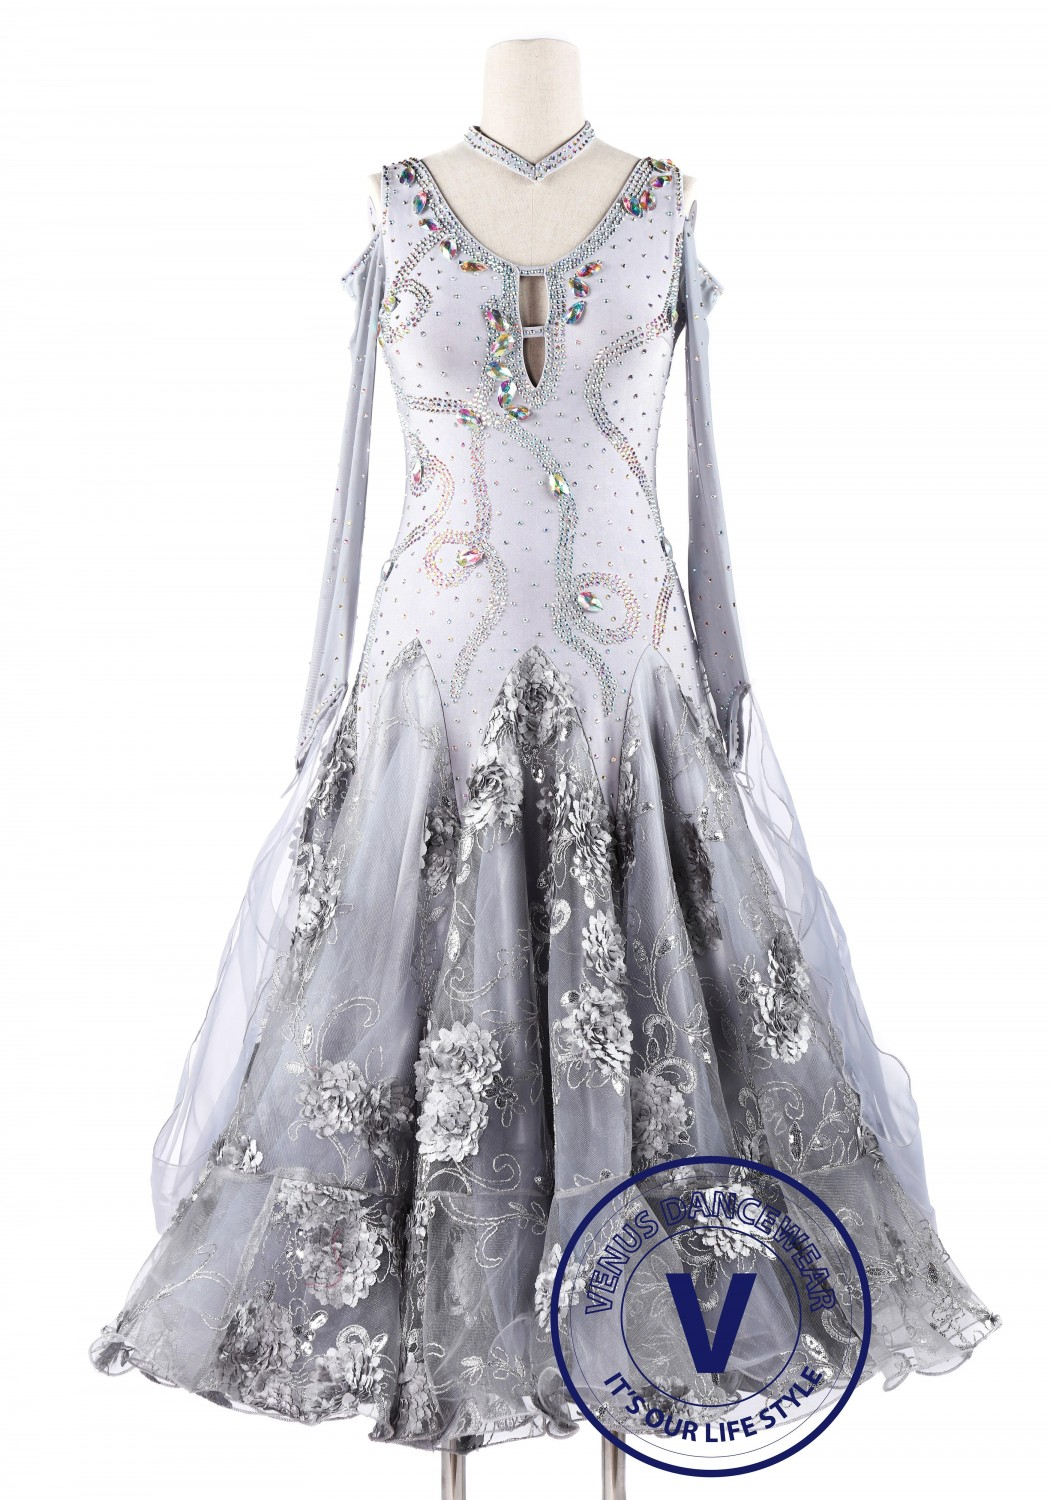 Silver Embroidery Foxtrot Waltz Standard Competition Dance Dress